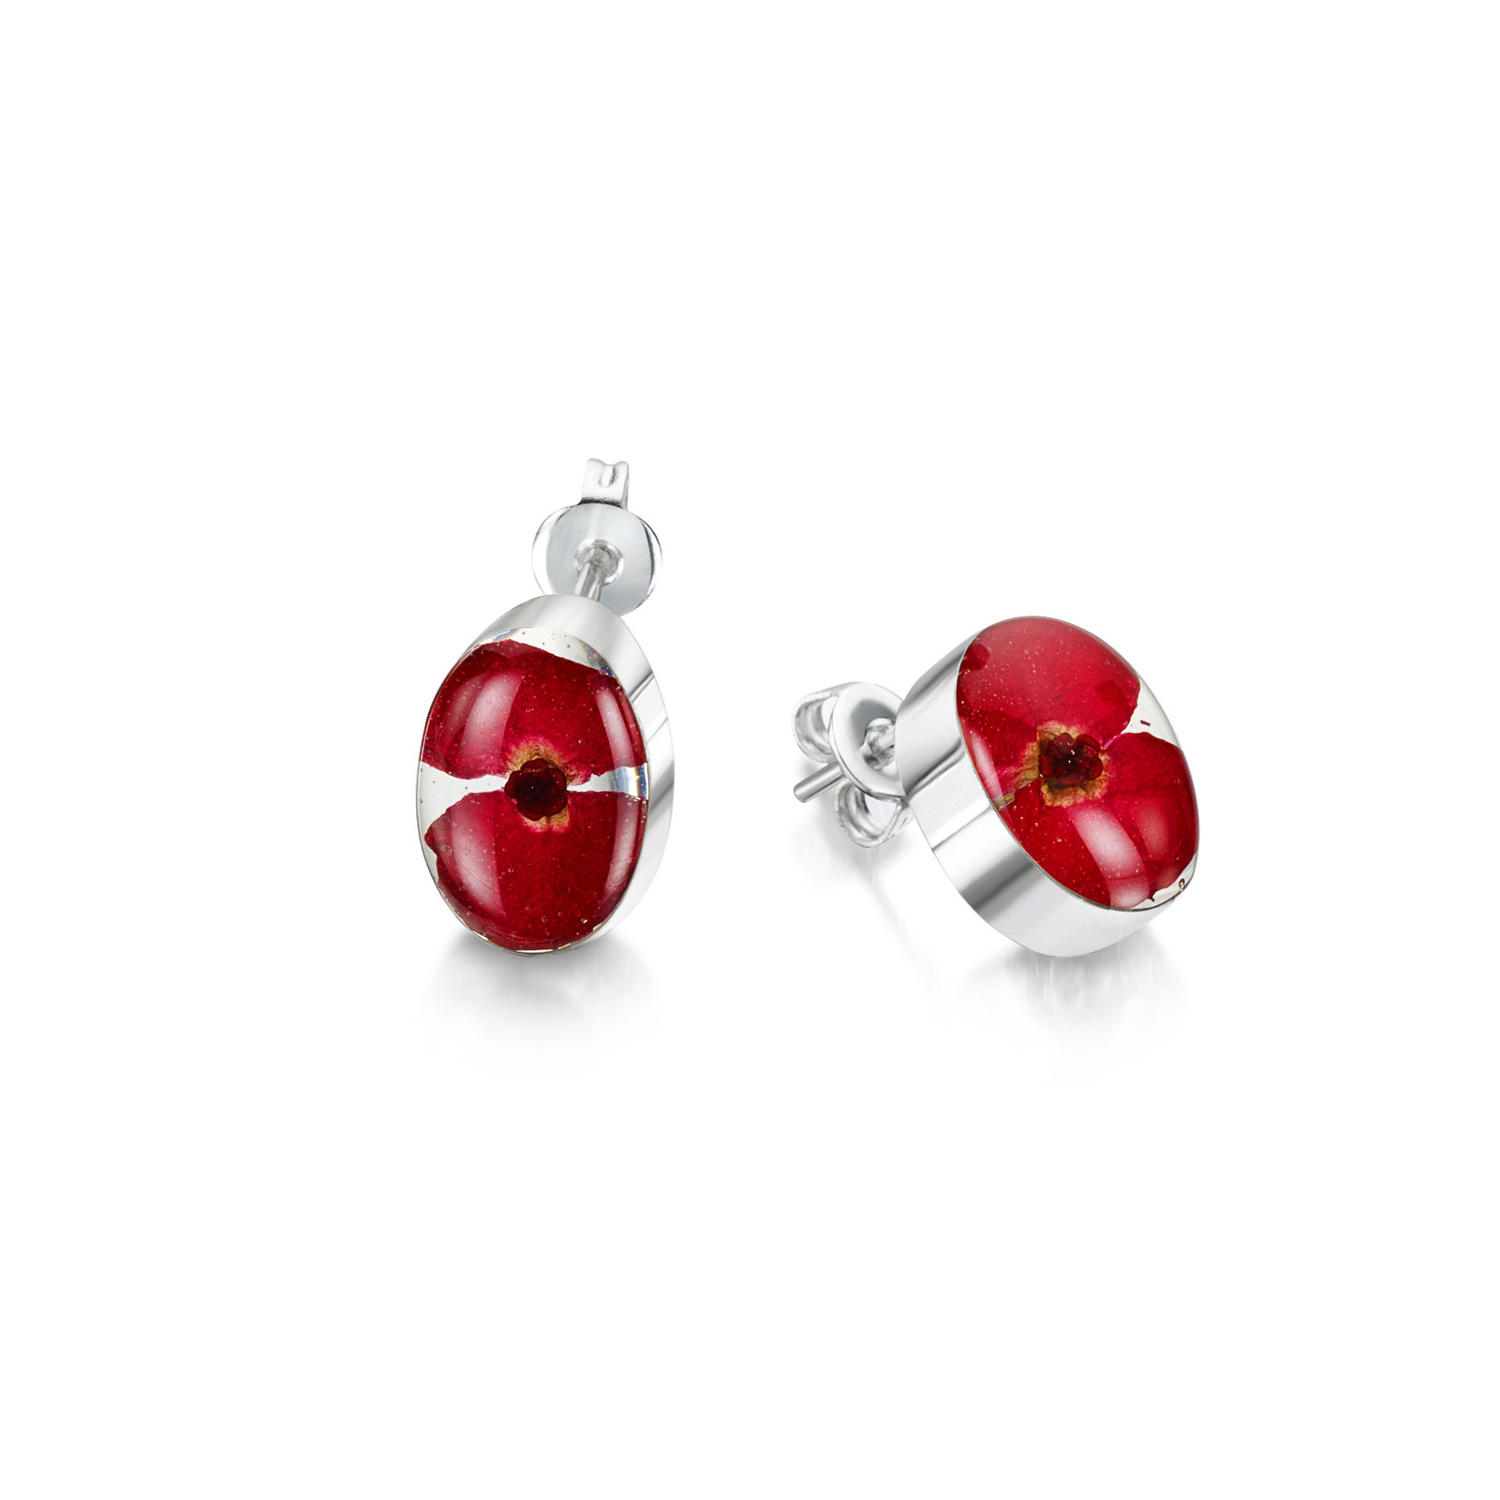 Poppy Oval Stud Earrings